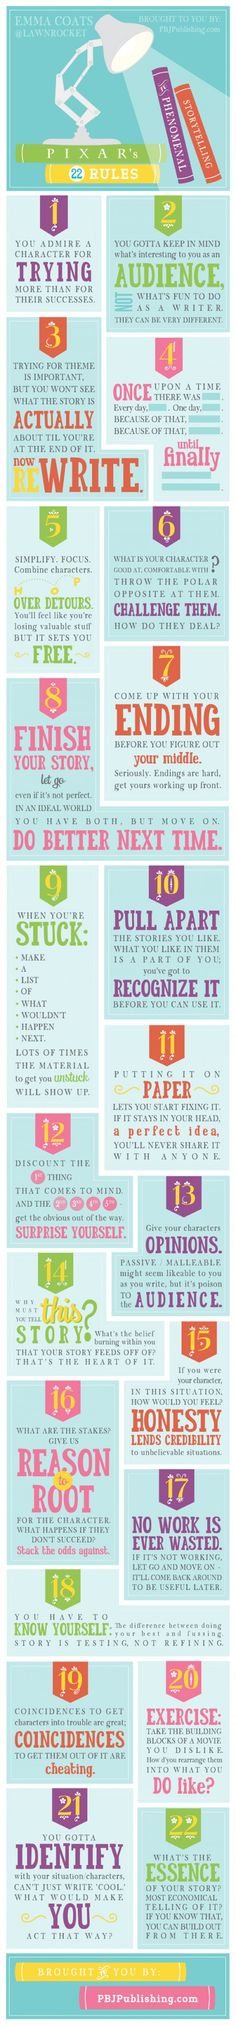 Pixar's 22 Rules to Phenomenal Storytelling, brought to you by @pbjpublishing